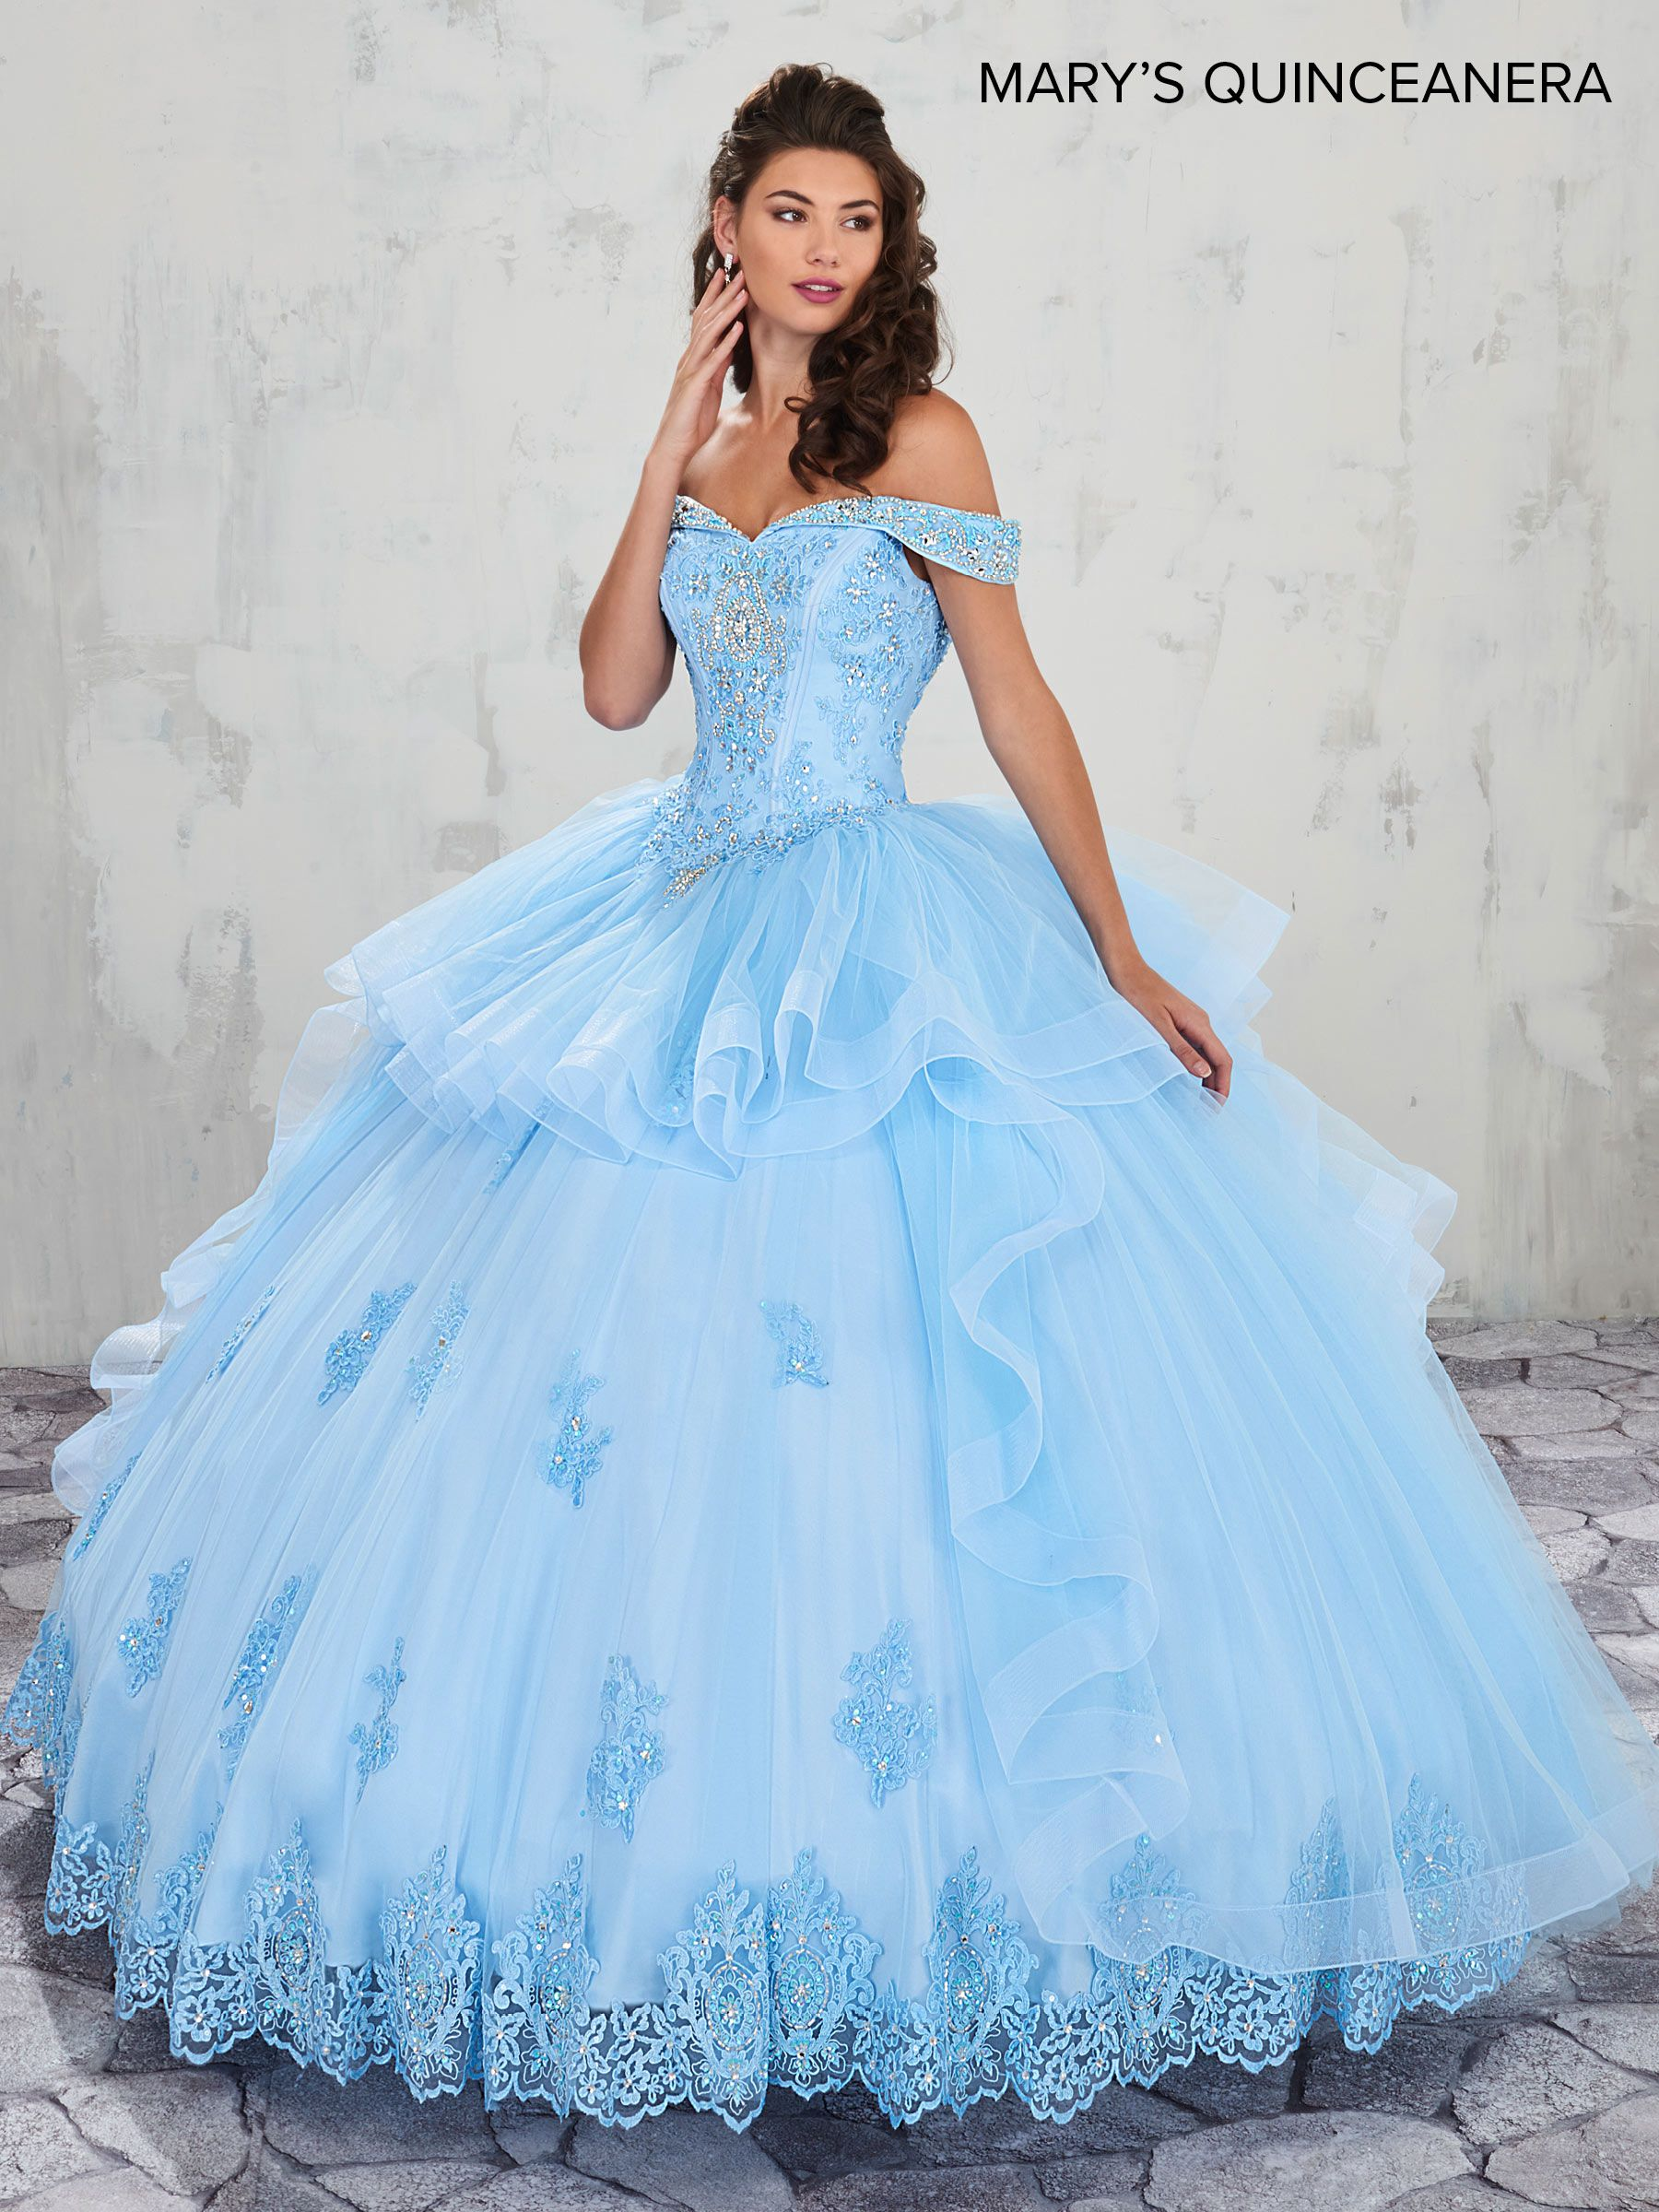 Style mq passion for fashion pinterest quinceanera ideas